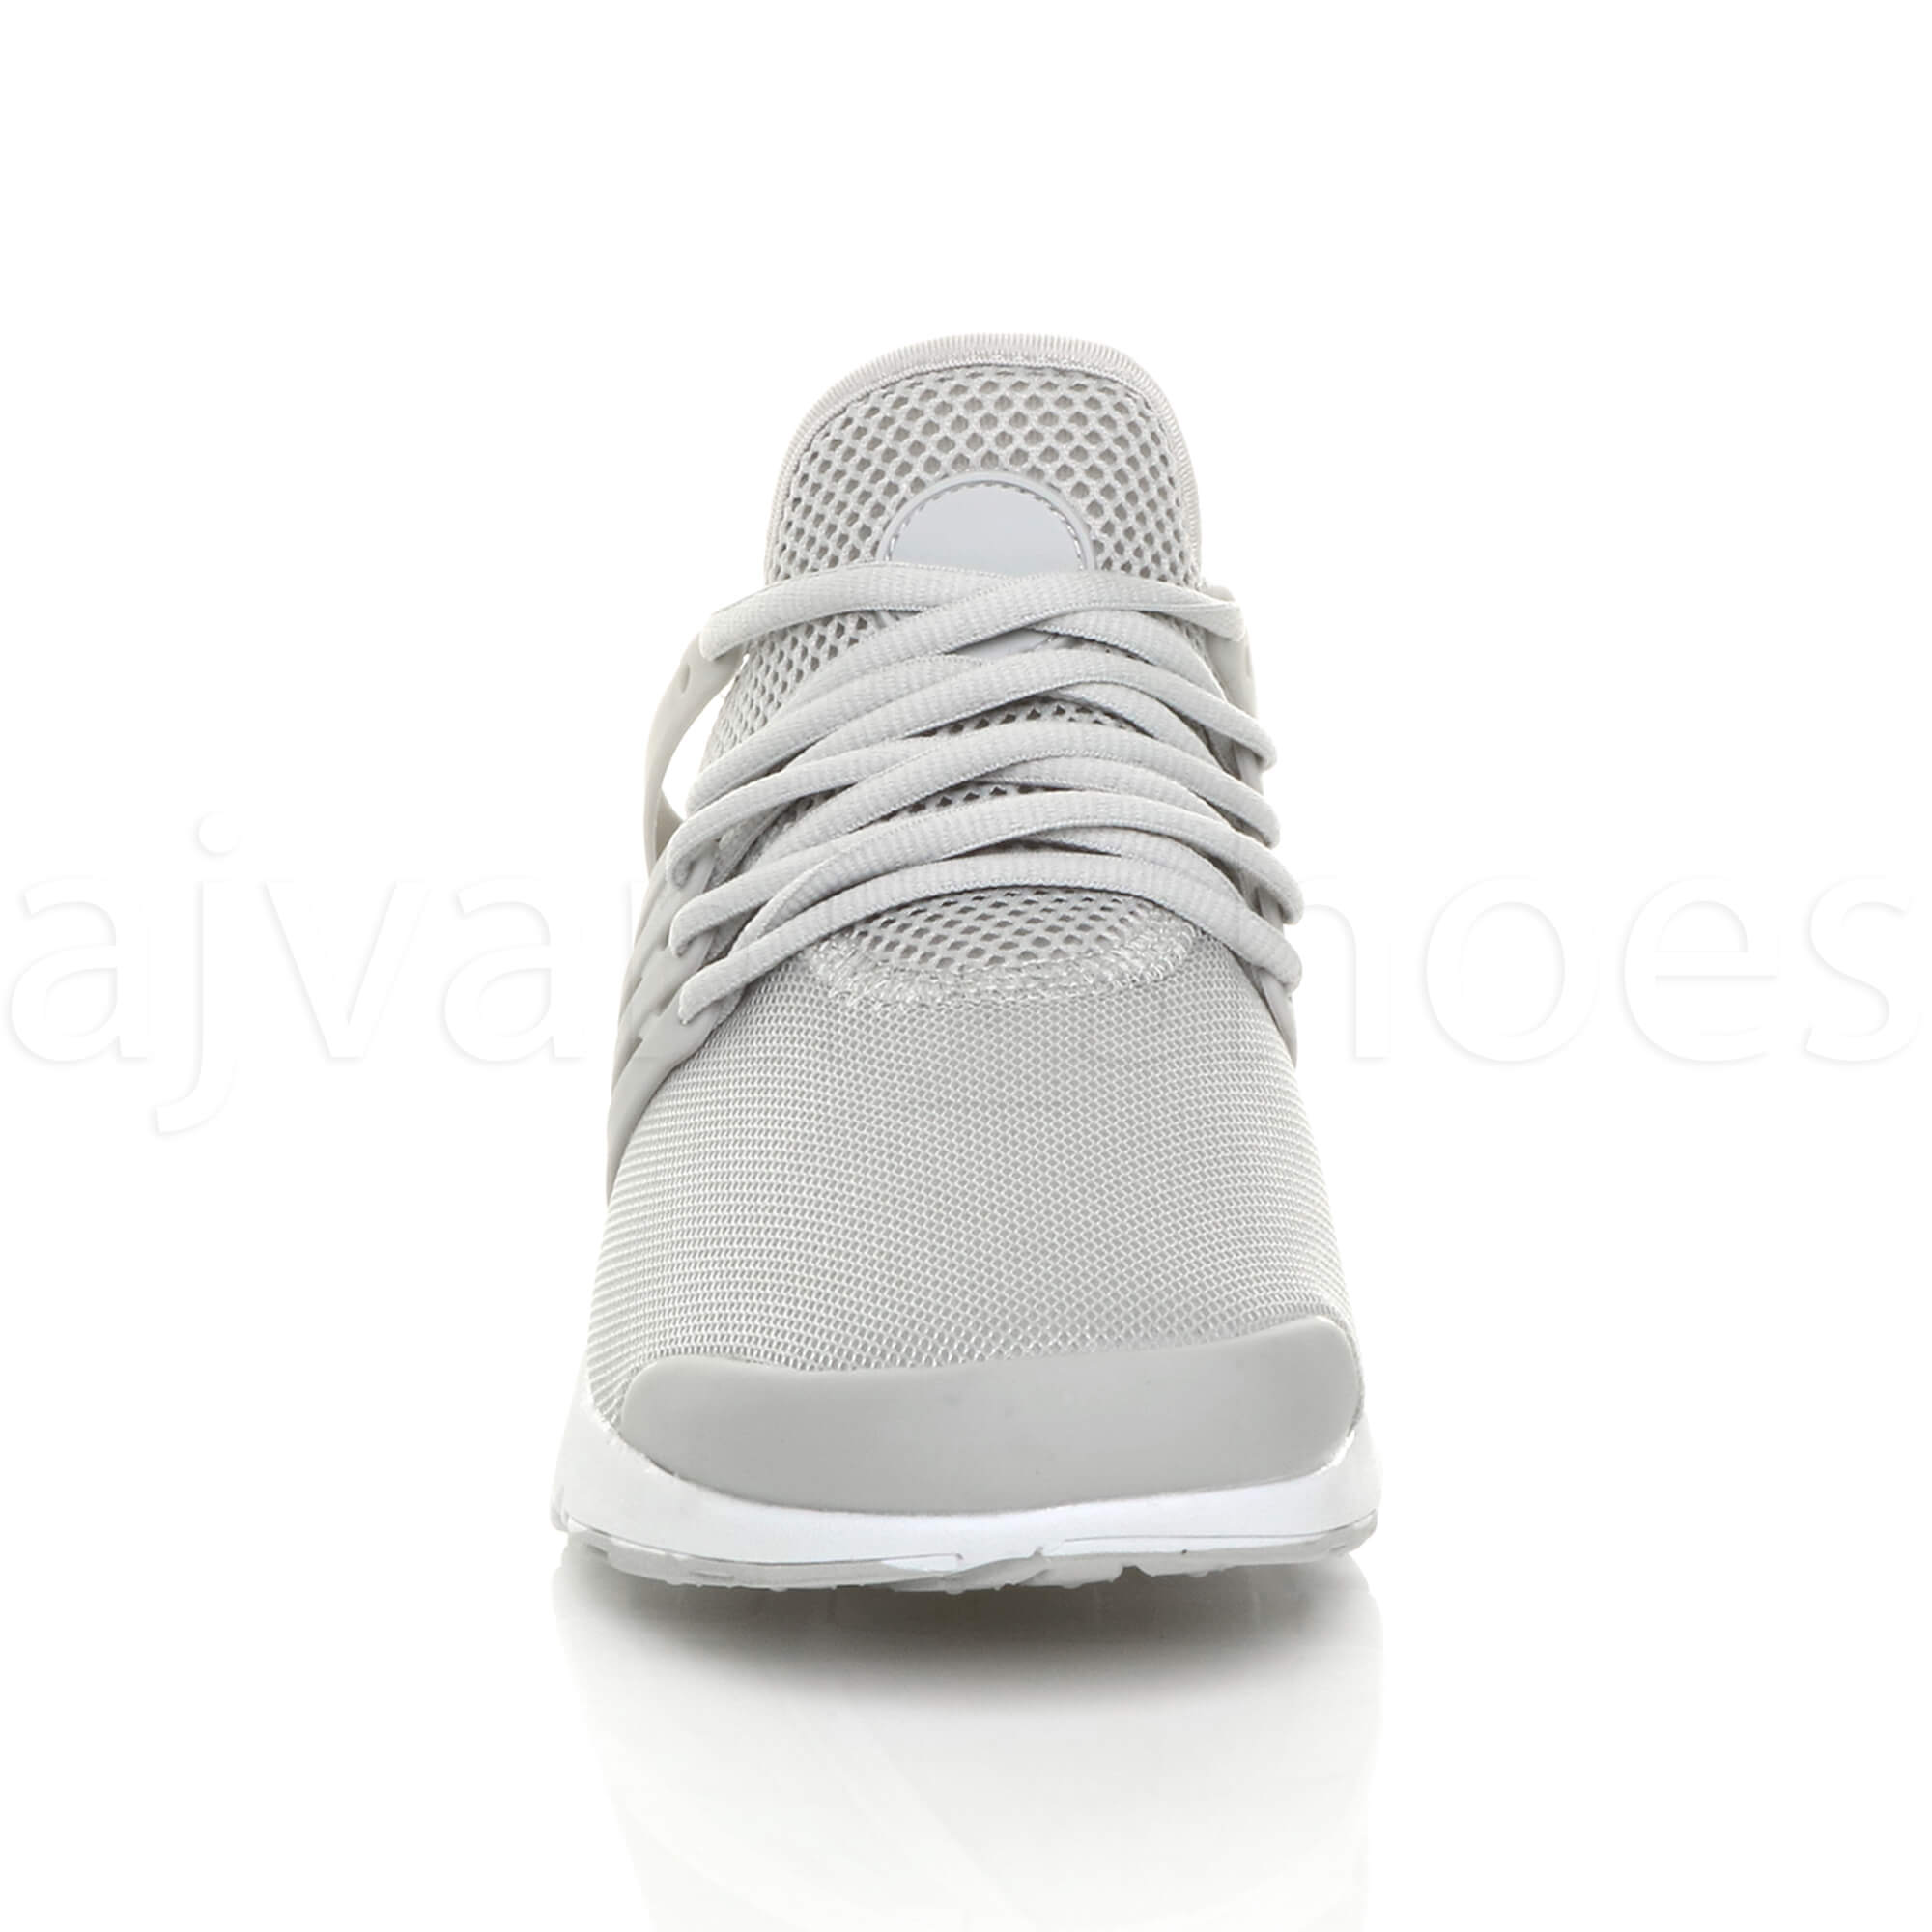 MENS-LACE-UP-SPORTS-GYM-FITNESS-RUNNING-FLEXIBLE-TRAINERS-CASUAL-SNEAKERS-SIZE thumbnail 23